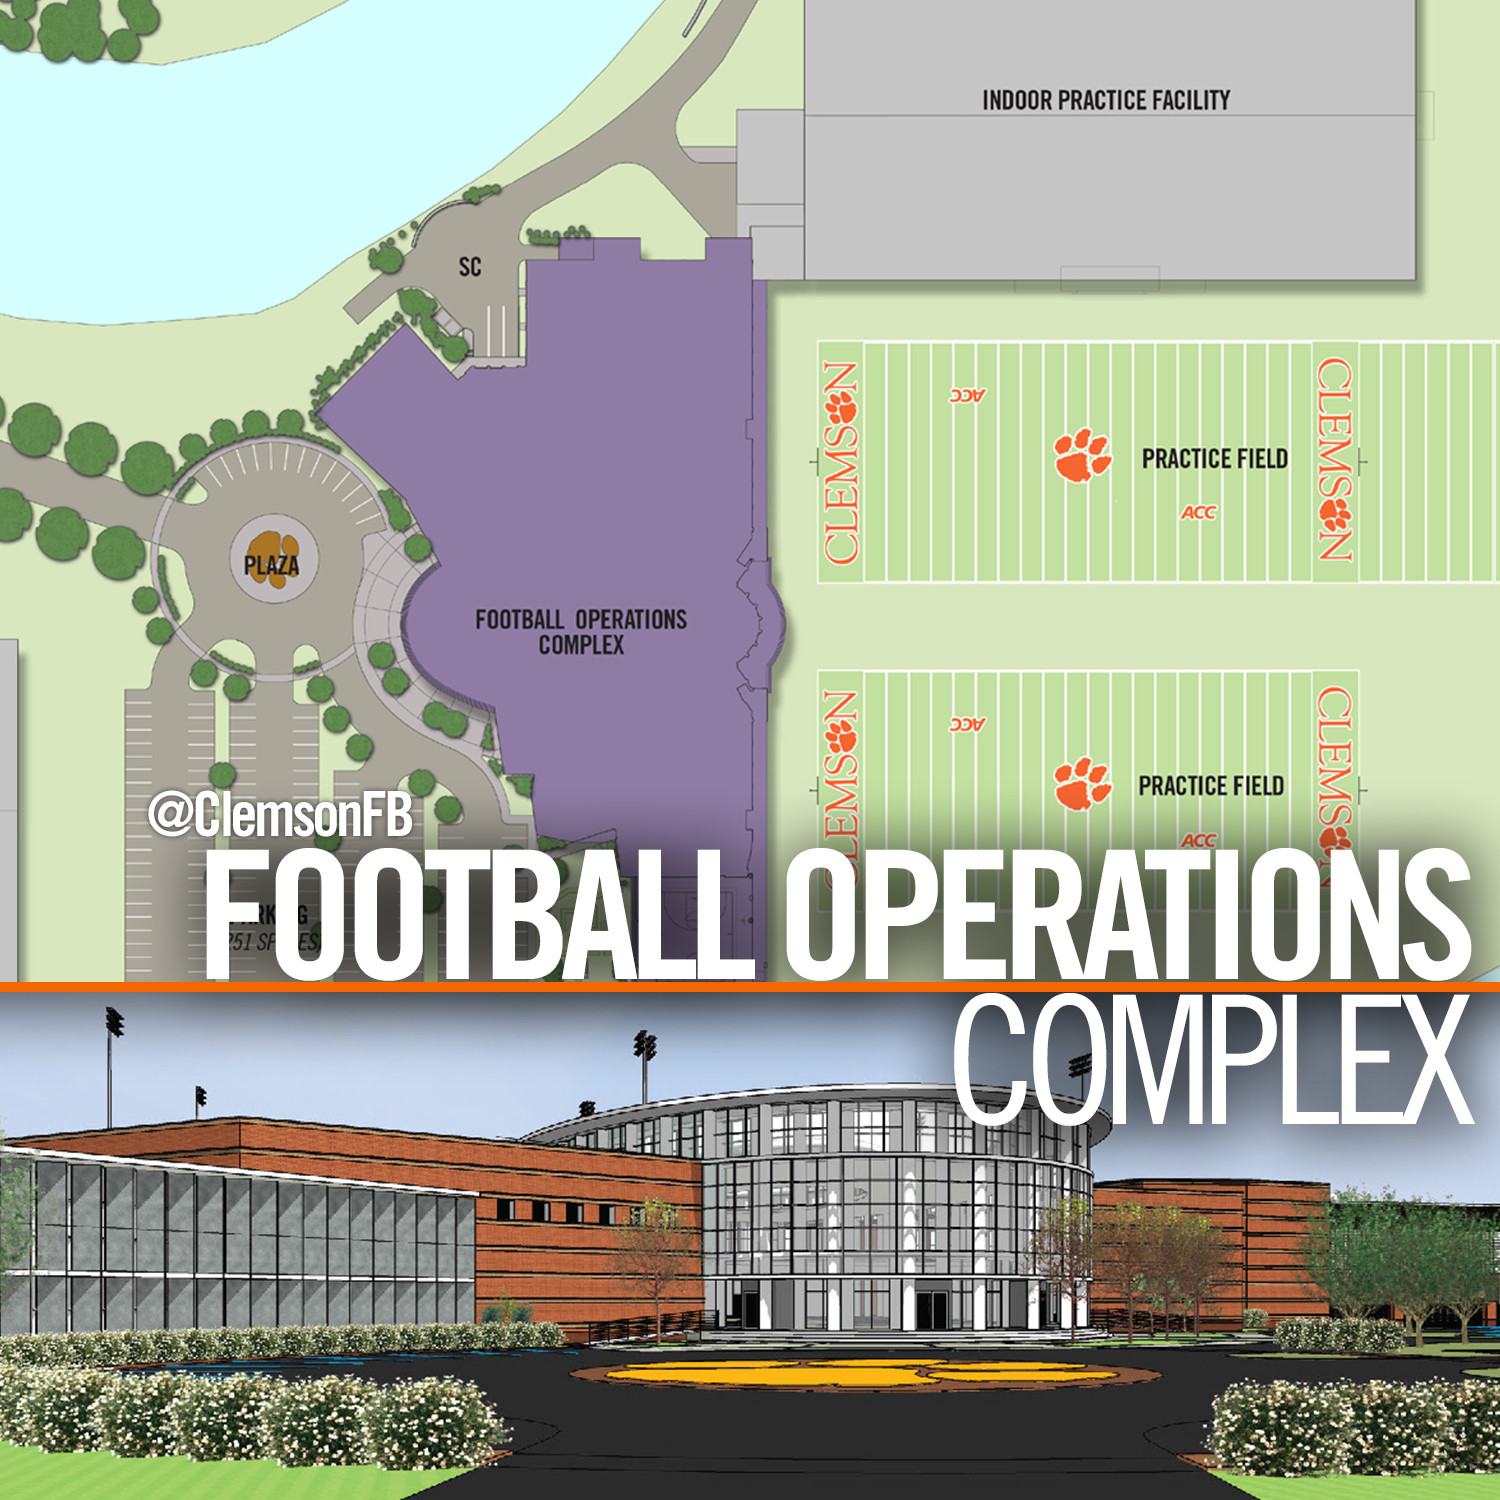 Clemson Board of Trustees Gives Approval for Football Operations Building Project